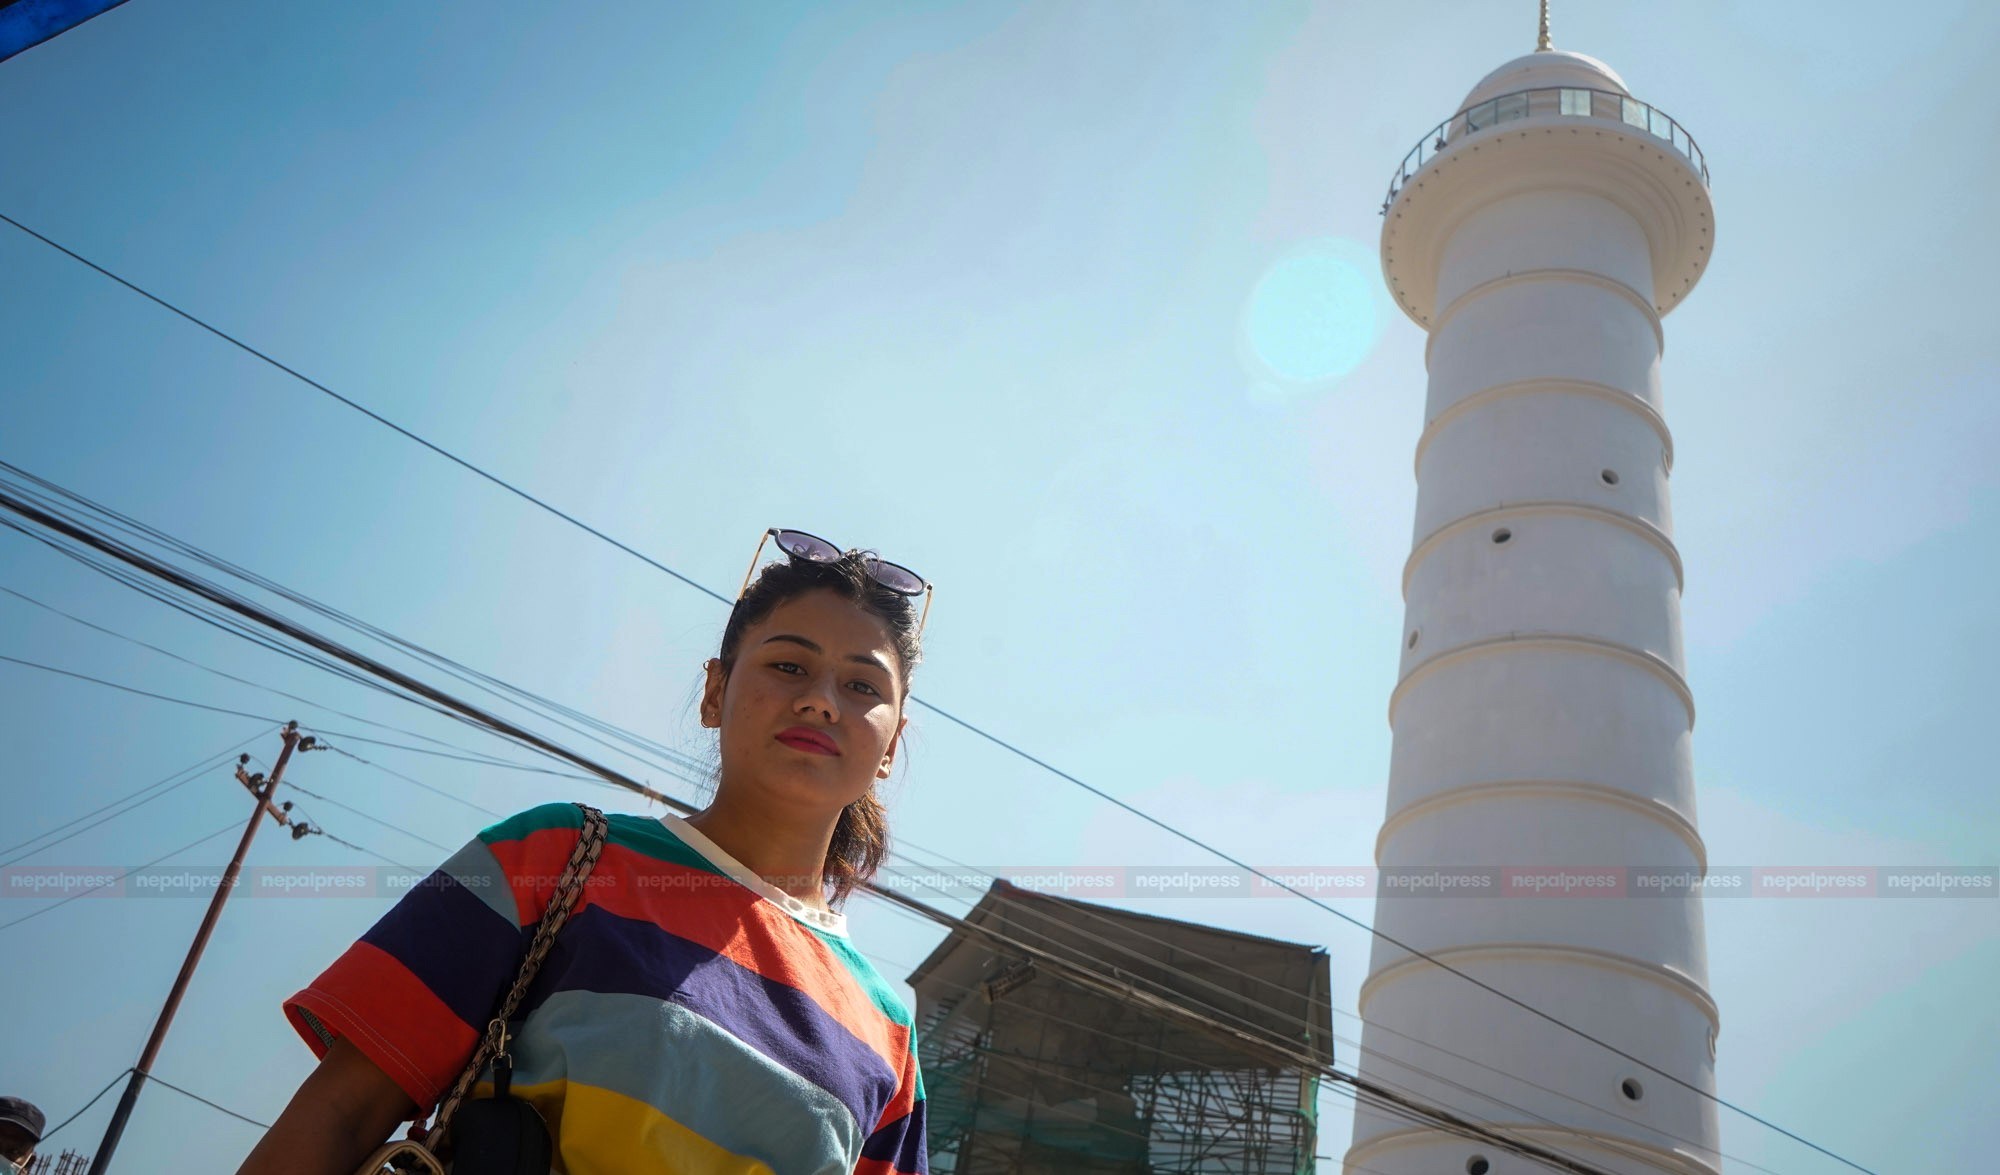 I received a new life and so did Dharahara, may I now get employment here: Ramila Shrestha